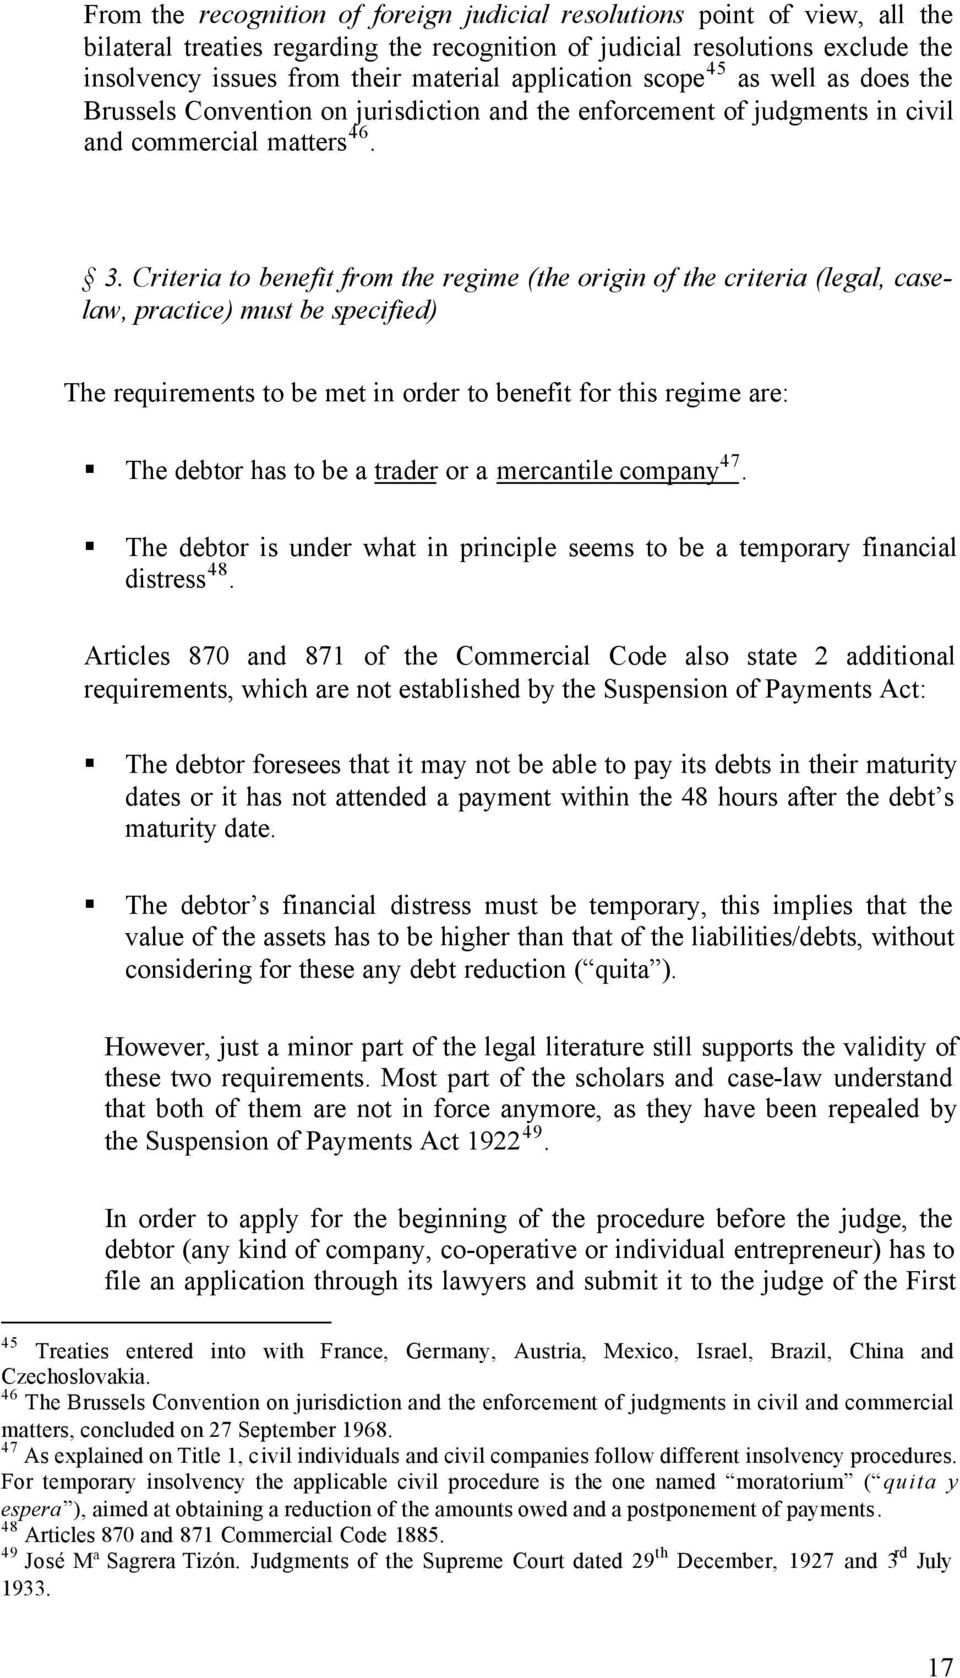 Criteria to benefit from the regime (the origin of the criteria (legal, caselaw, practice) must be specified) The requirements to be met in order to benefit for this regime are: The debtor has to be